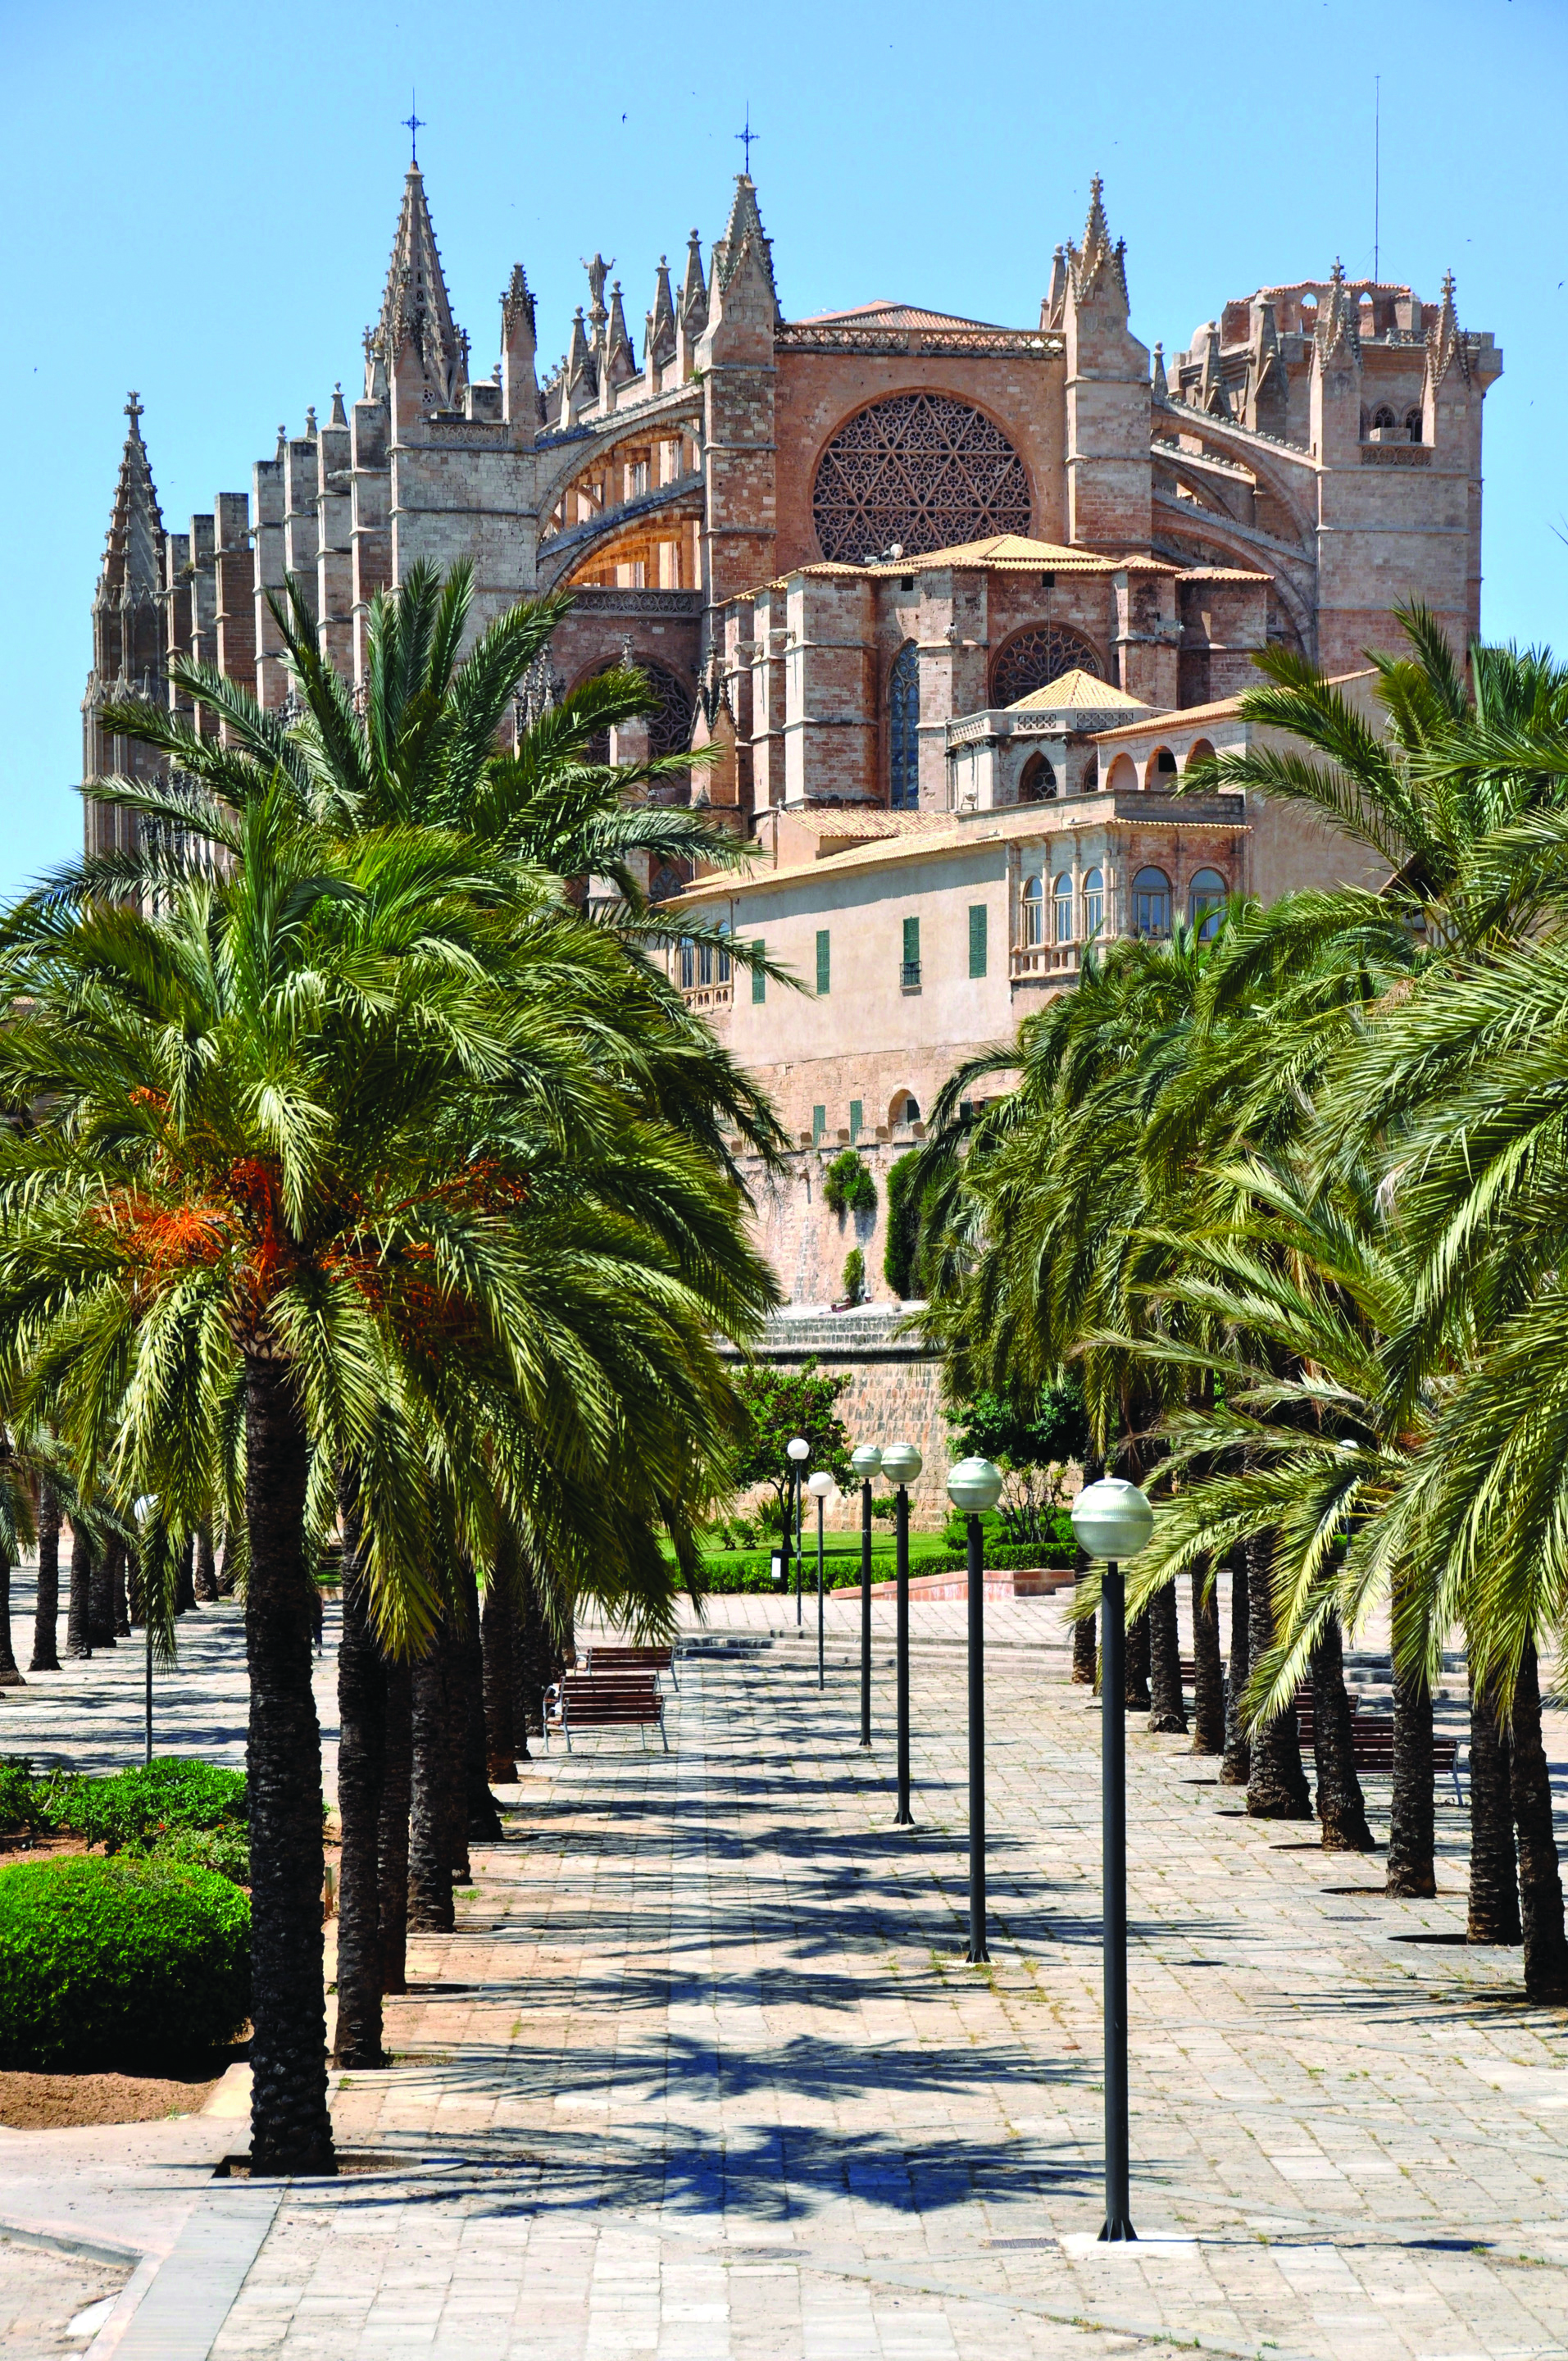 A walkway lined with palm trees and an impressive building in the background